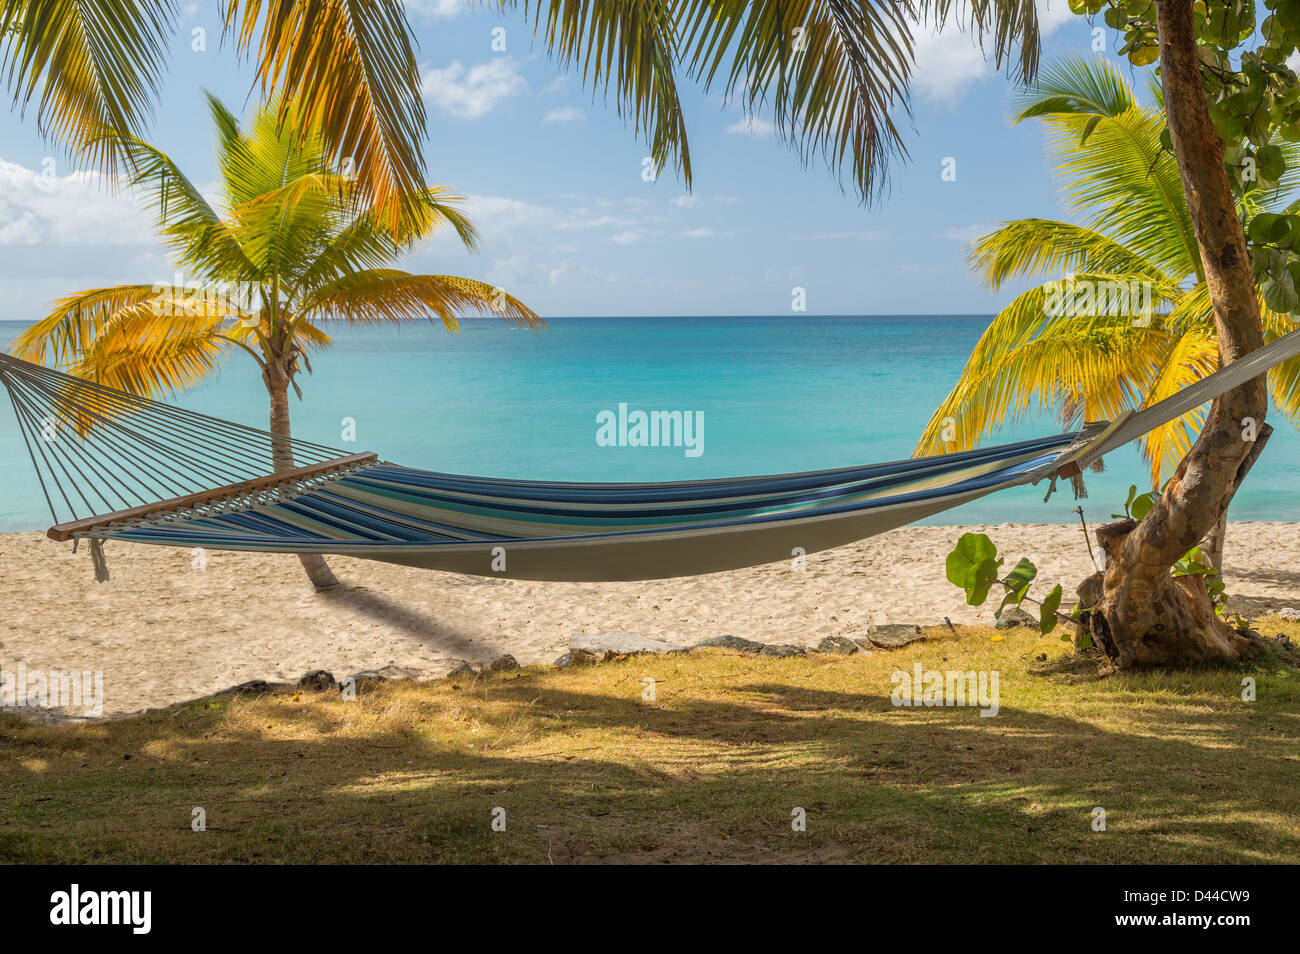 Hammock on a beach in the Caribbean, St Thomas, US Virgin Islands - Stock Image